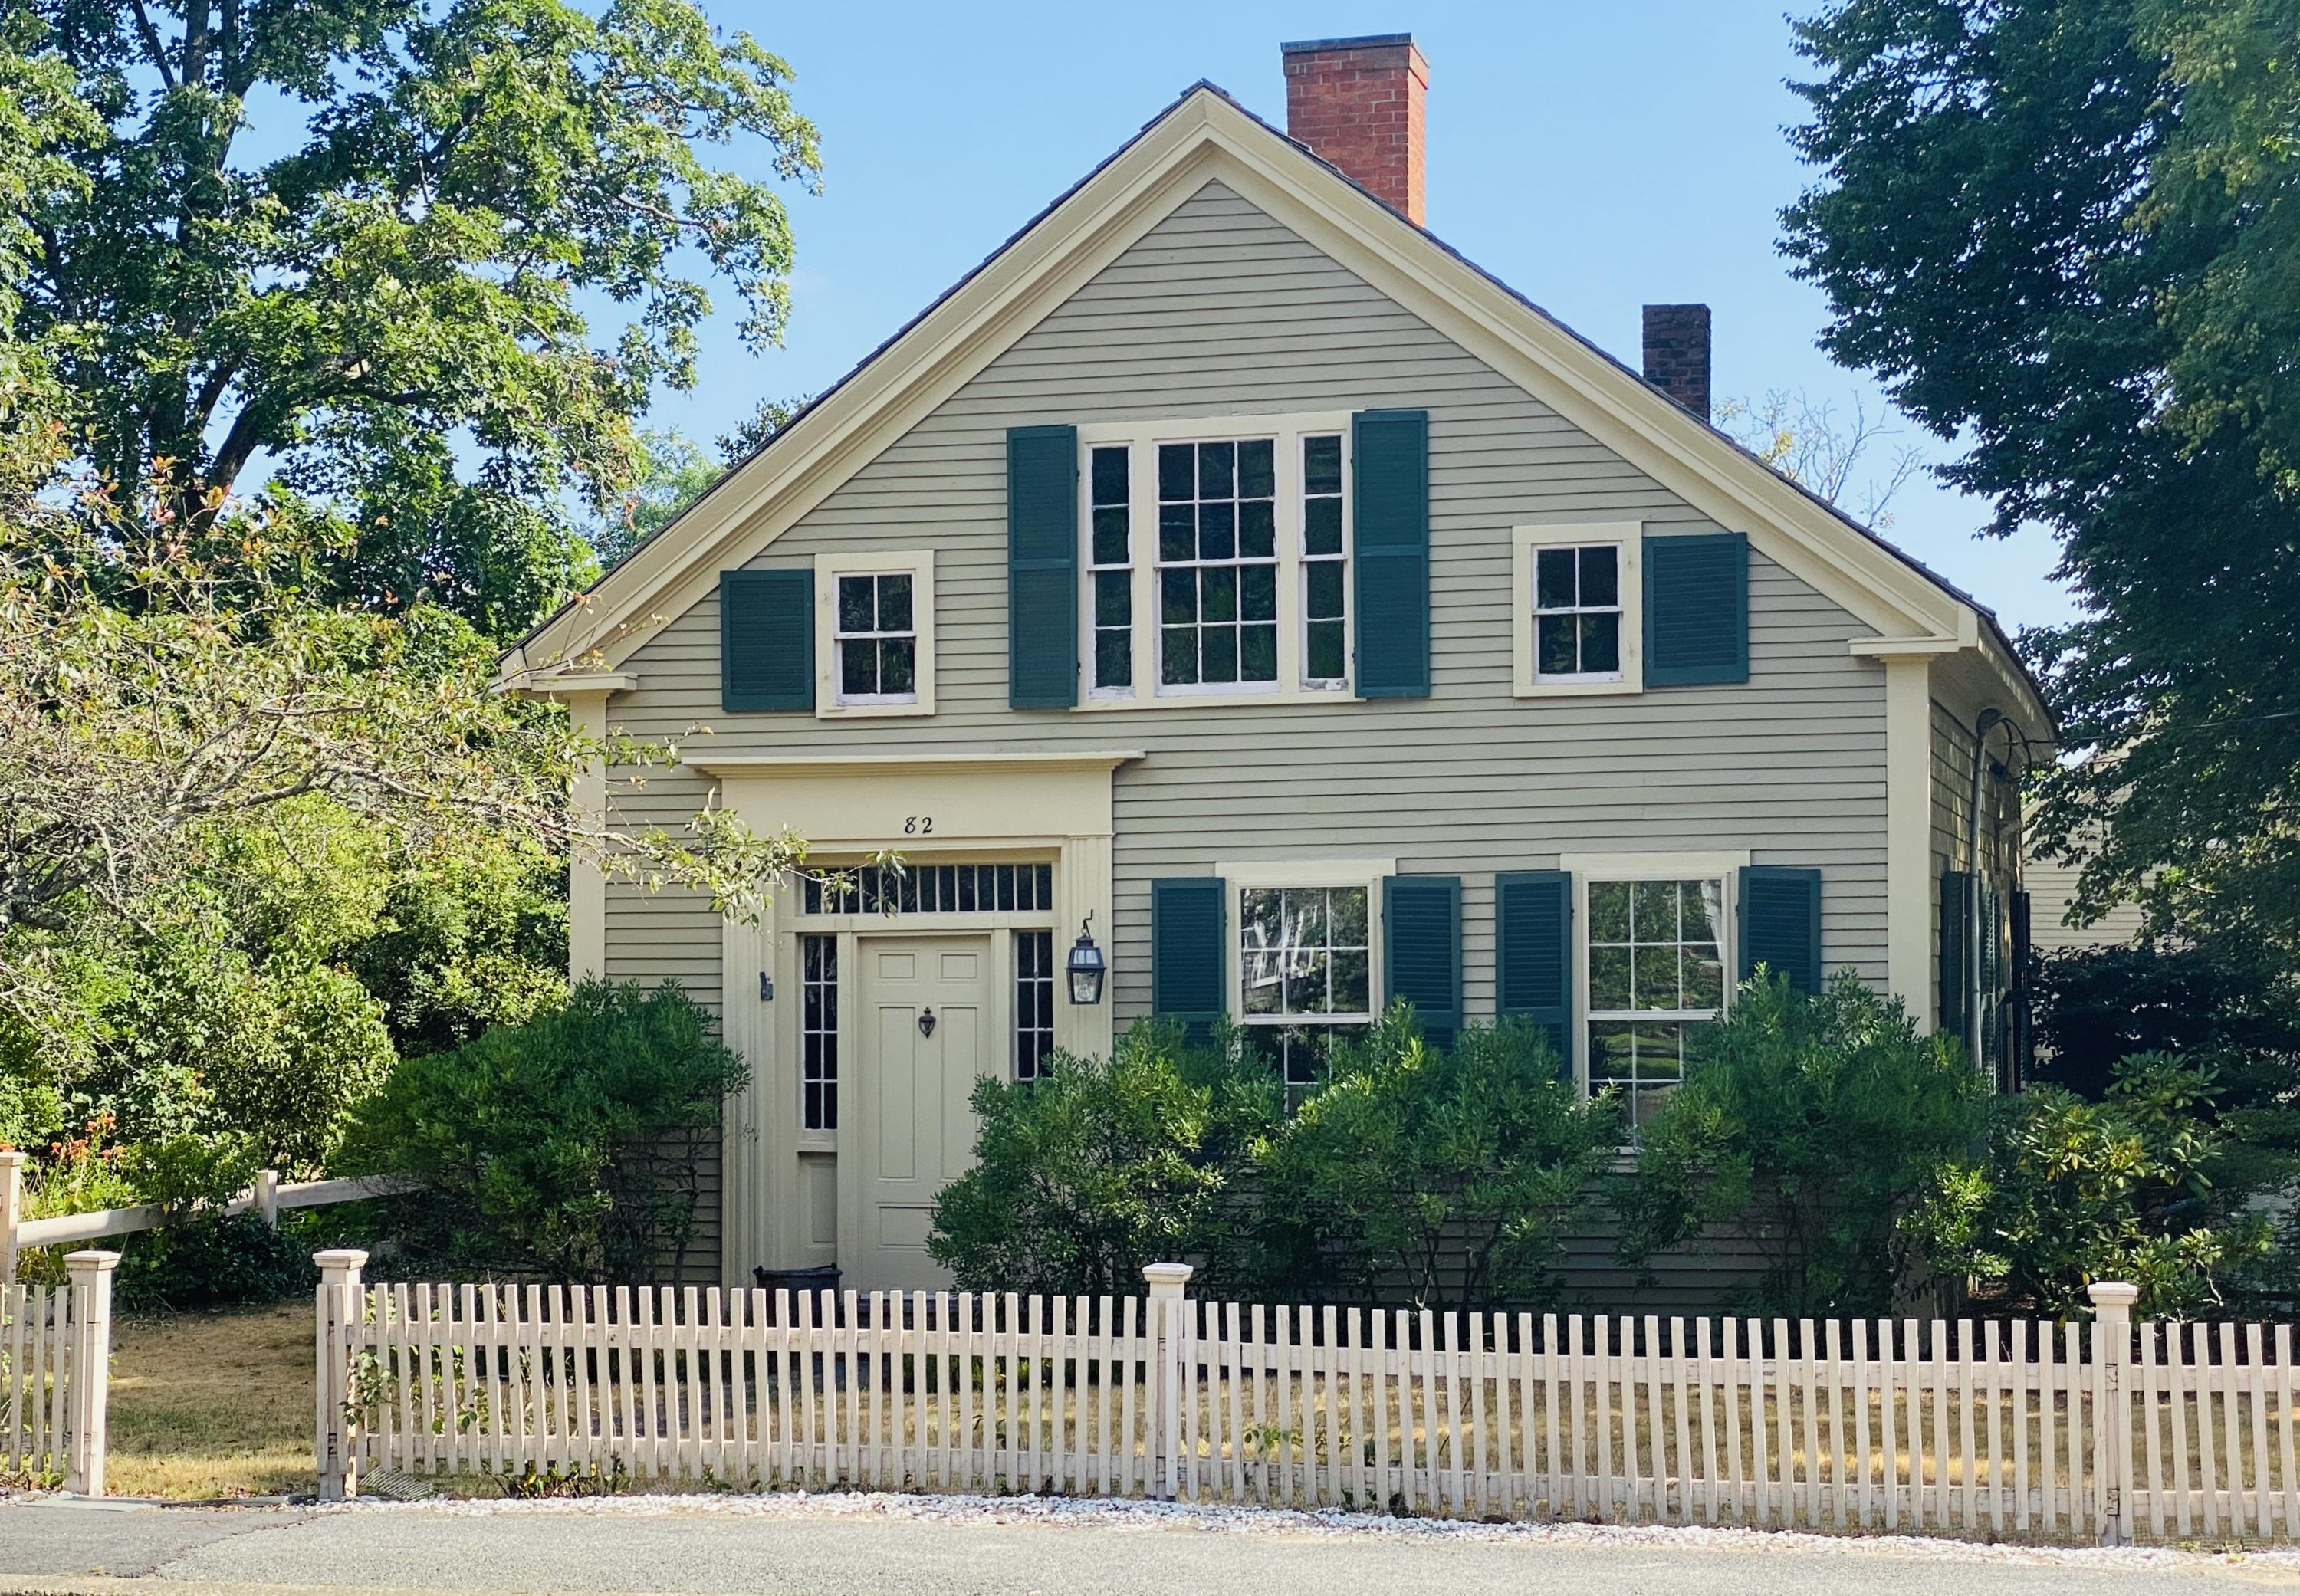 82-84 Main Street, Orleans MA, 02653 sales details